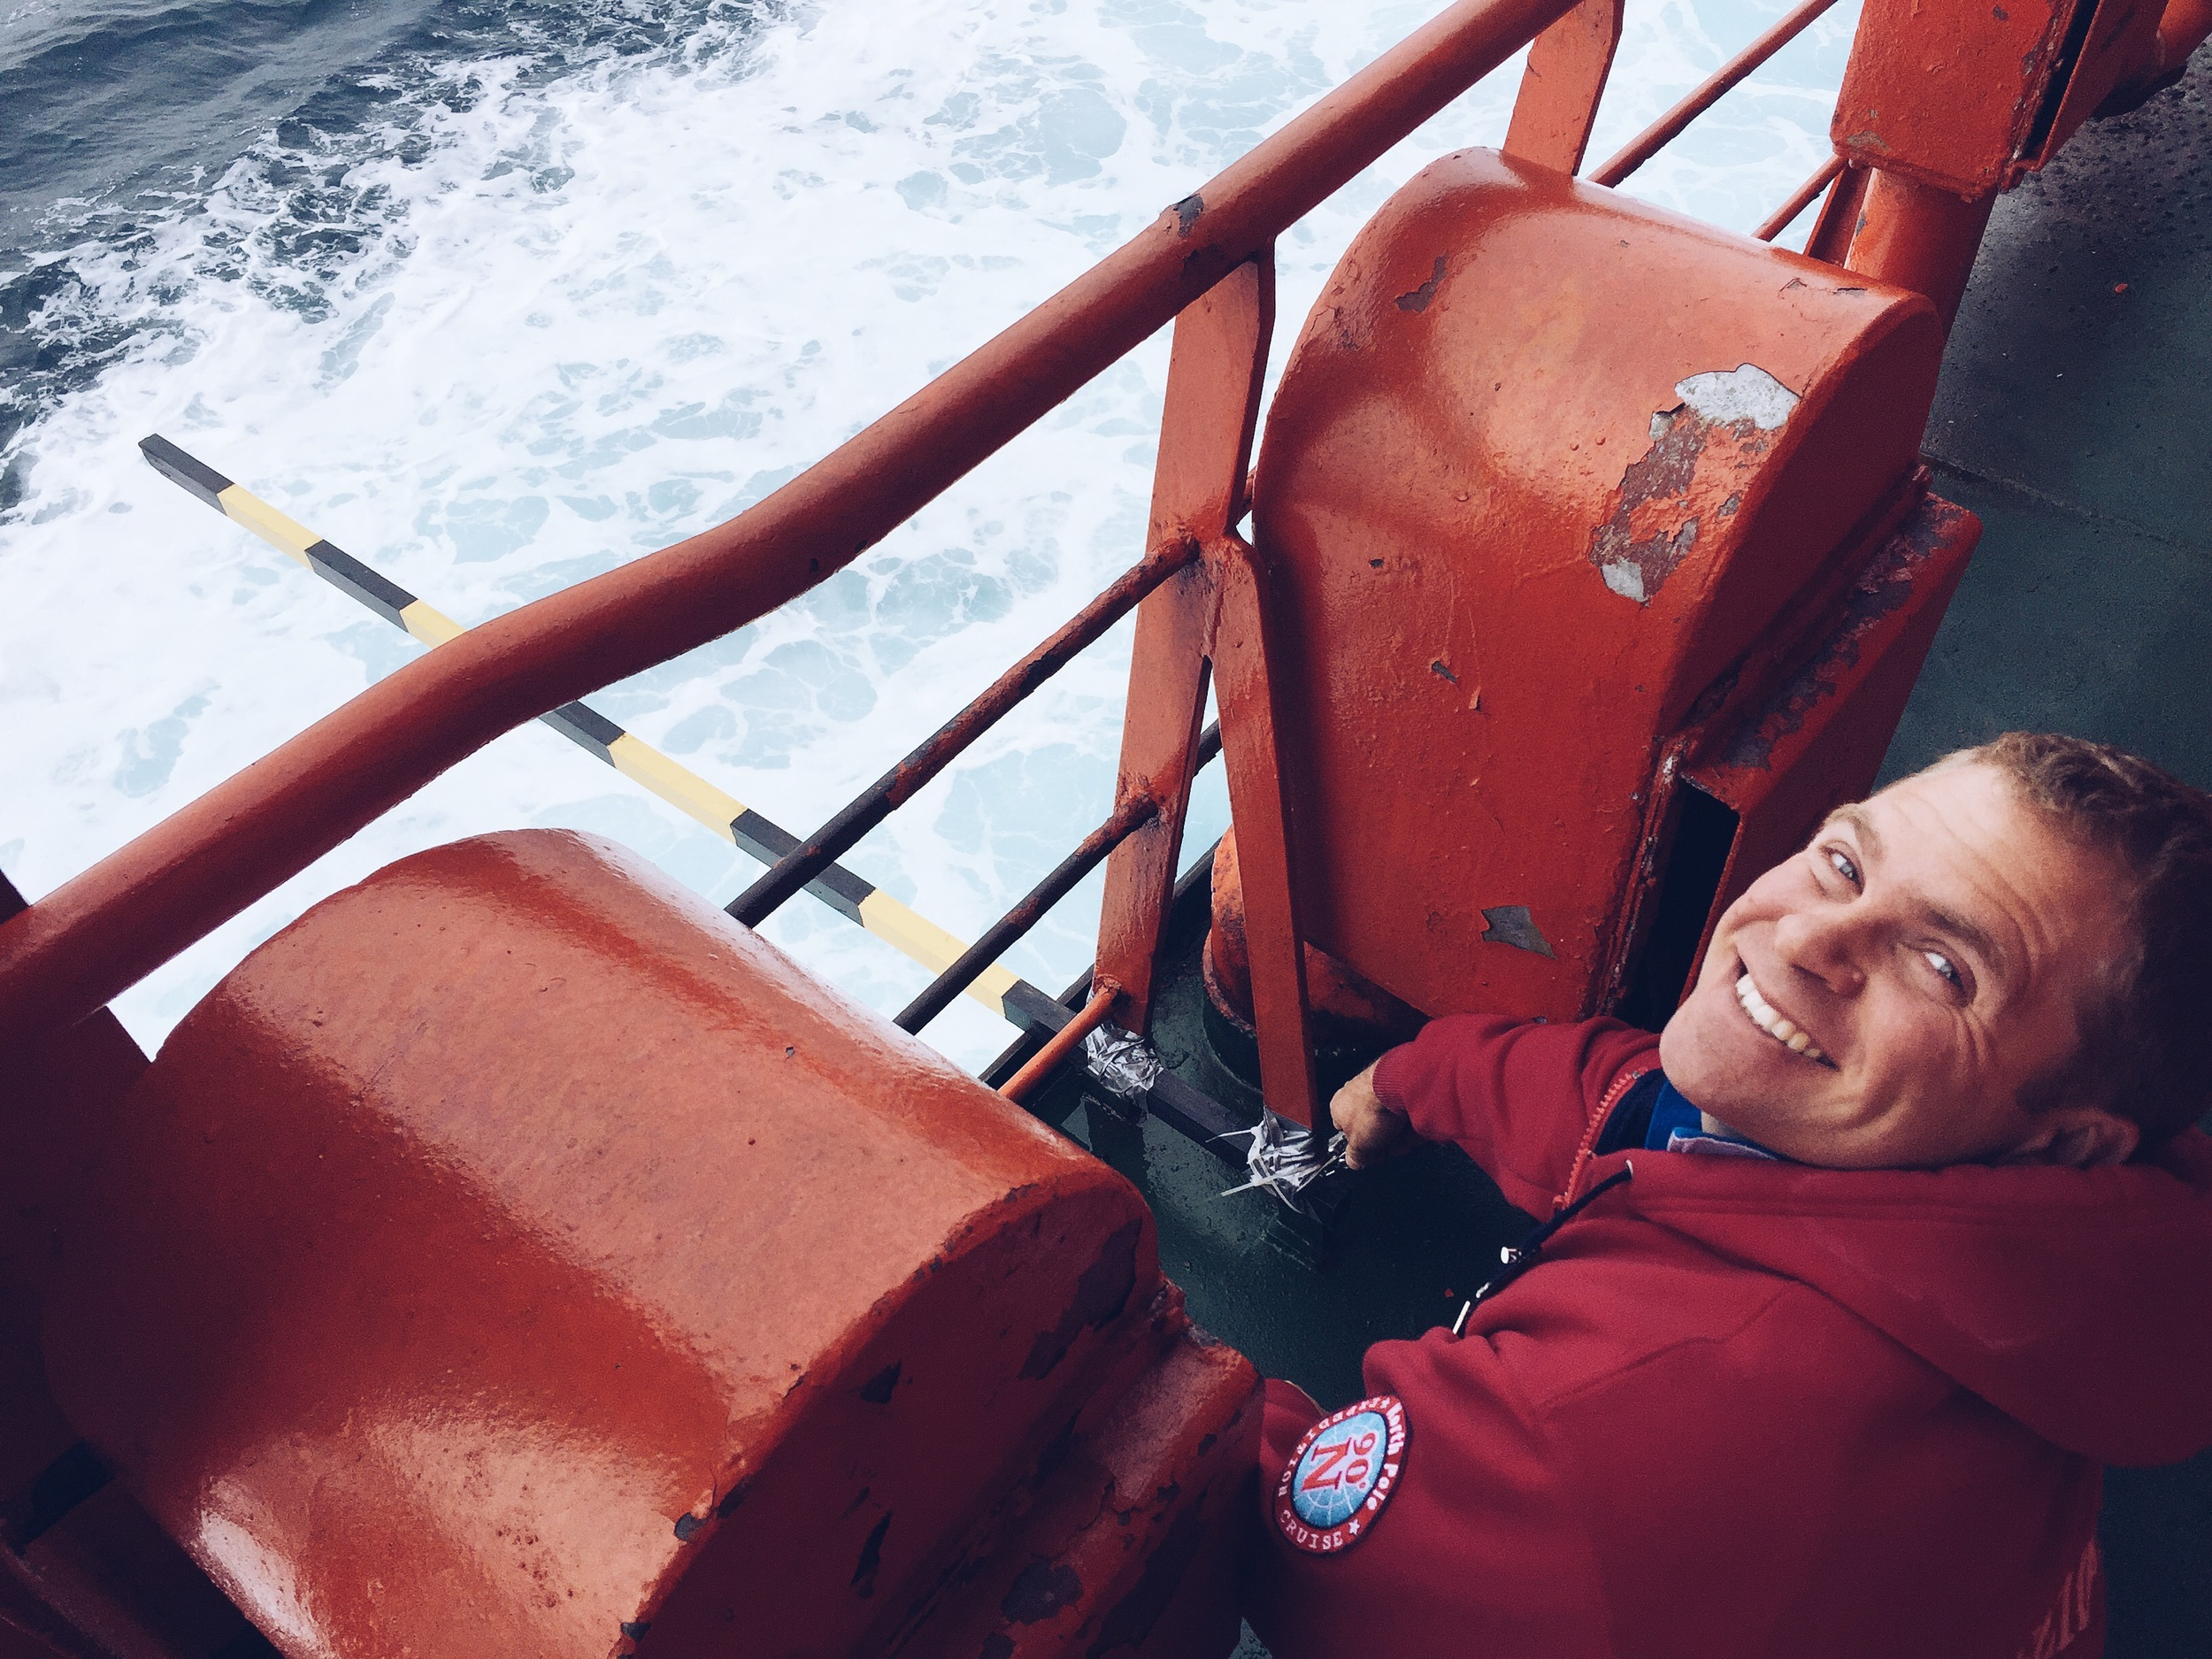 Working in the Barents Sea, affixing a ruler to the ship's side to help accurately estimate ice thickness as it breaks and overturns next to the ship